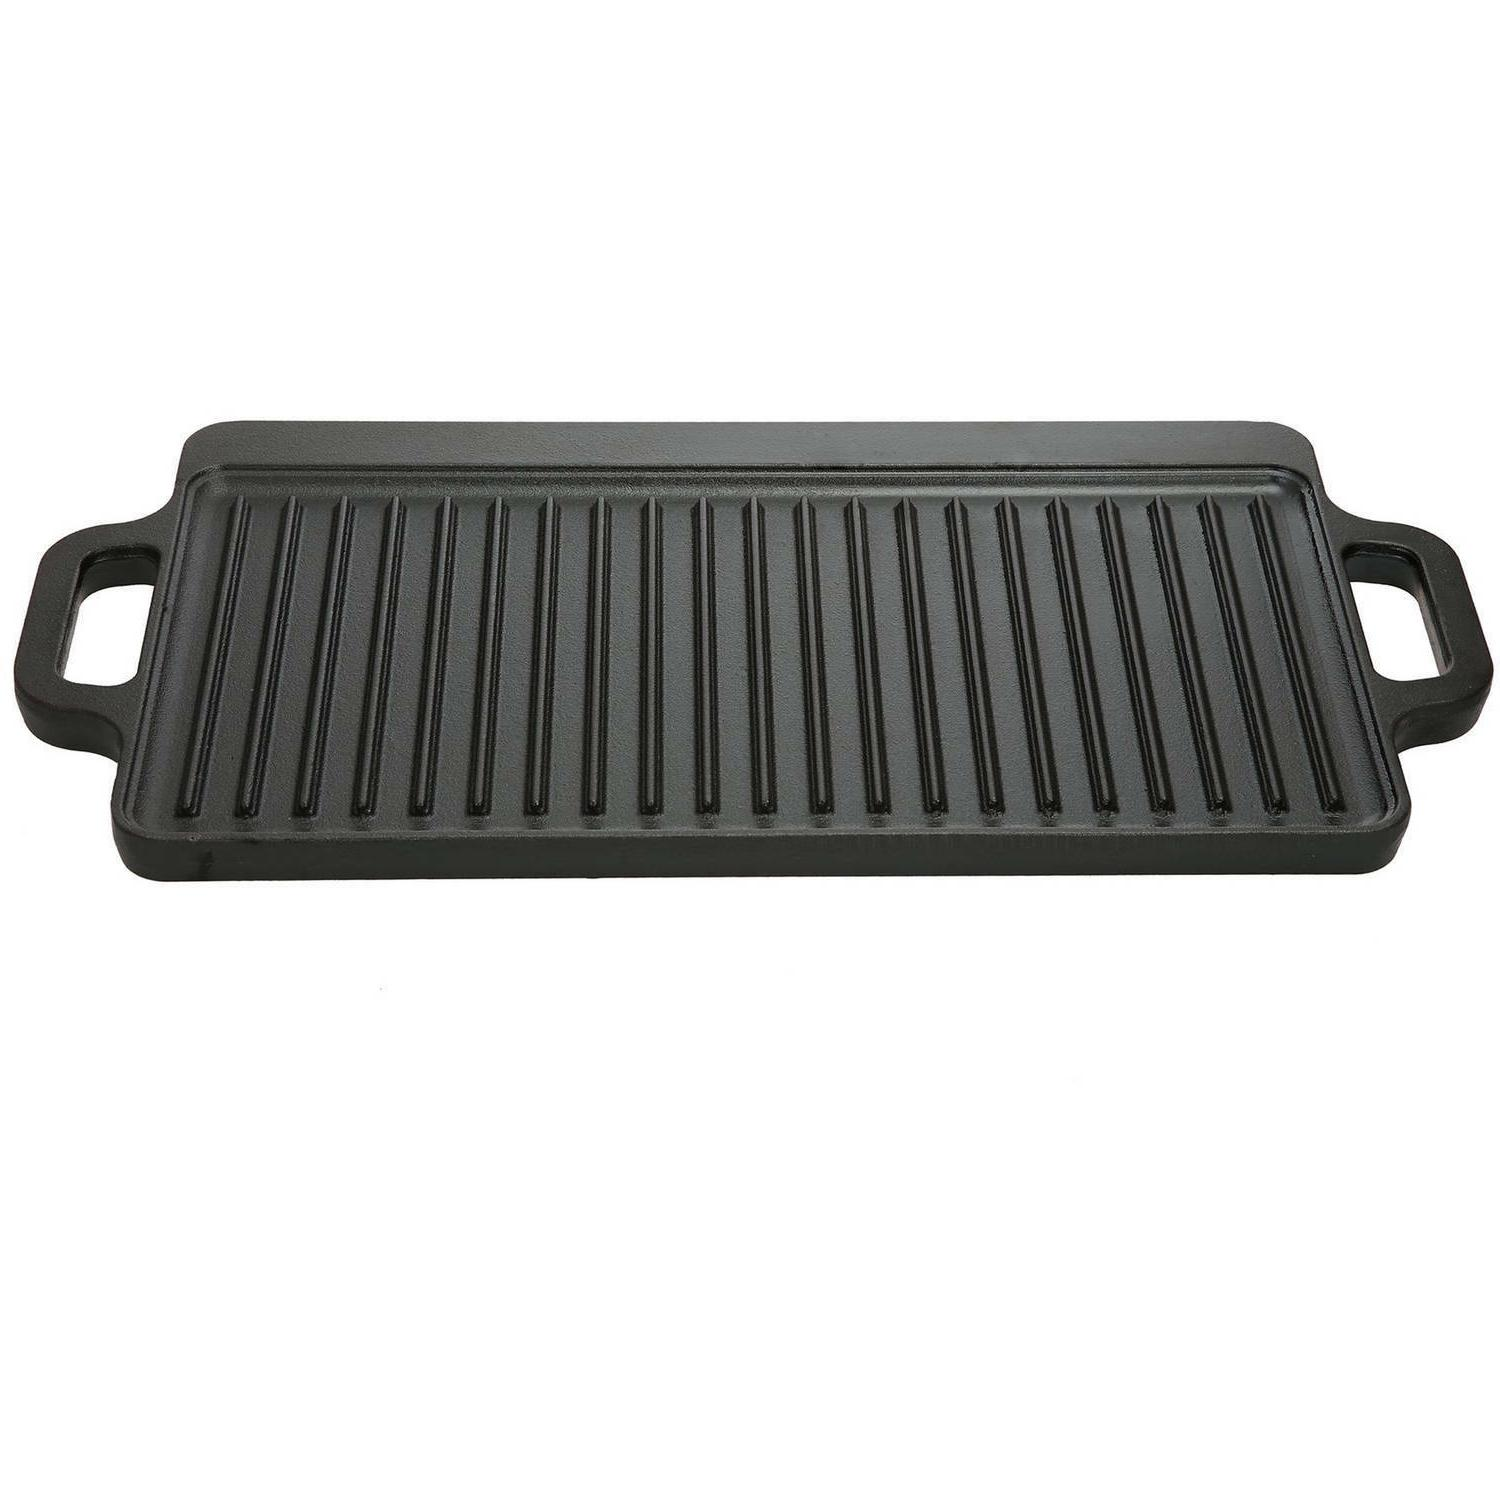 Cast Iron Griddle Grill Pan BBQ Skillet Barbecue Top